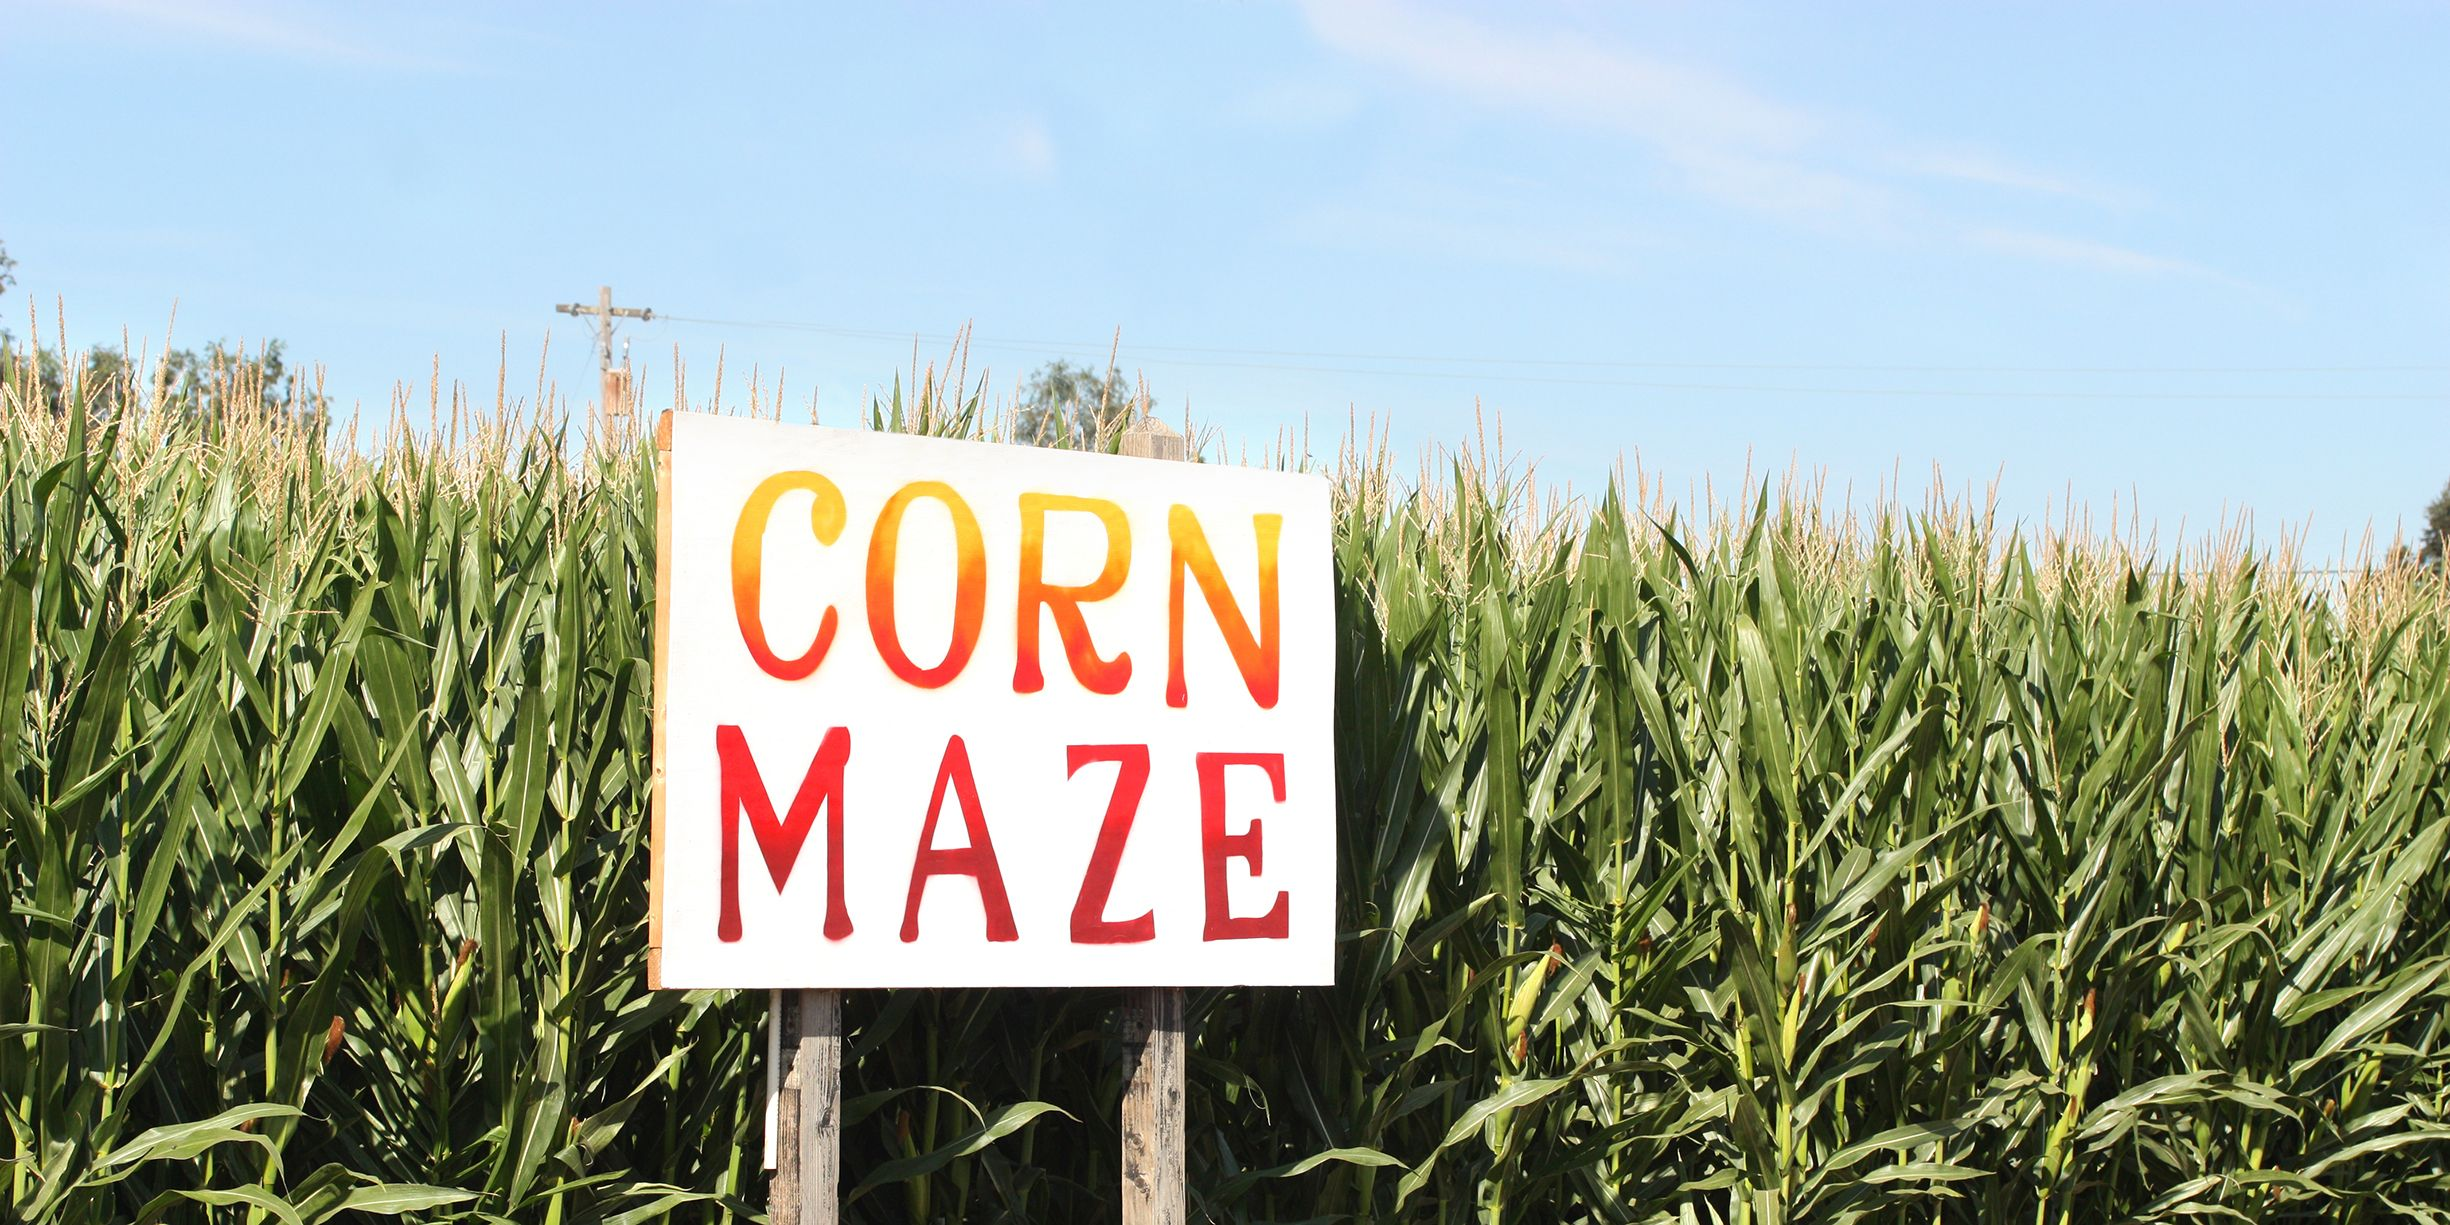 The 25 Best Corn Mazes Across the Country to Visit This Fall